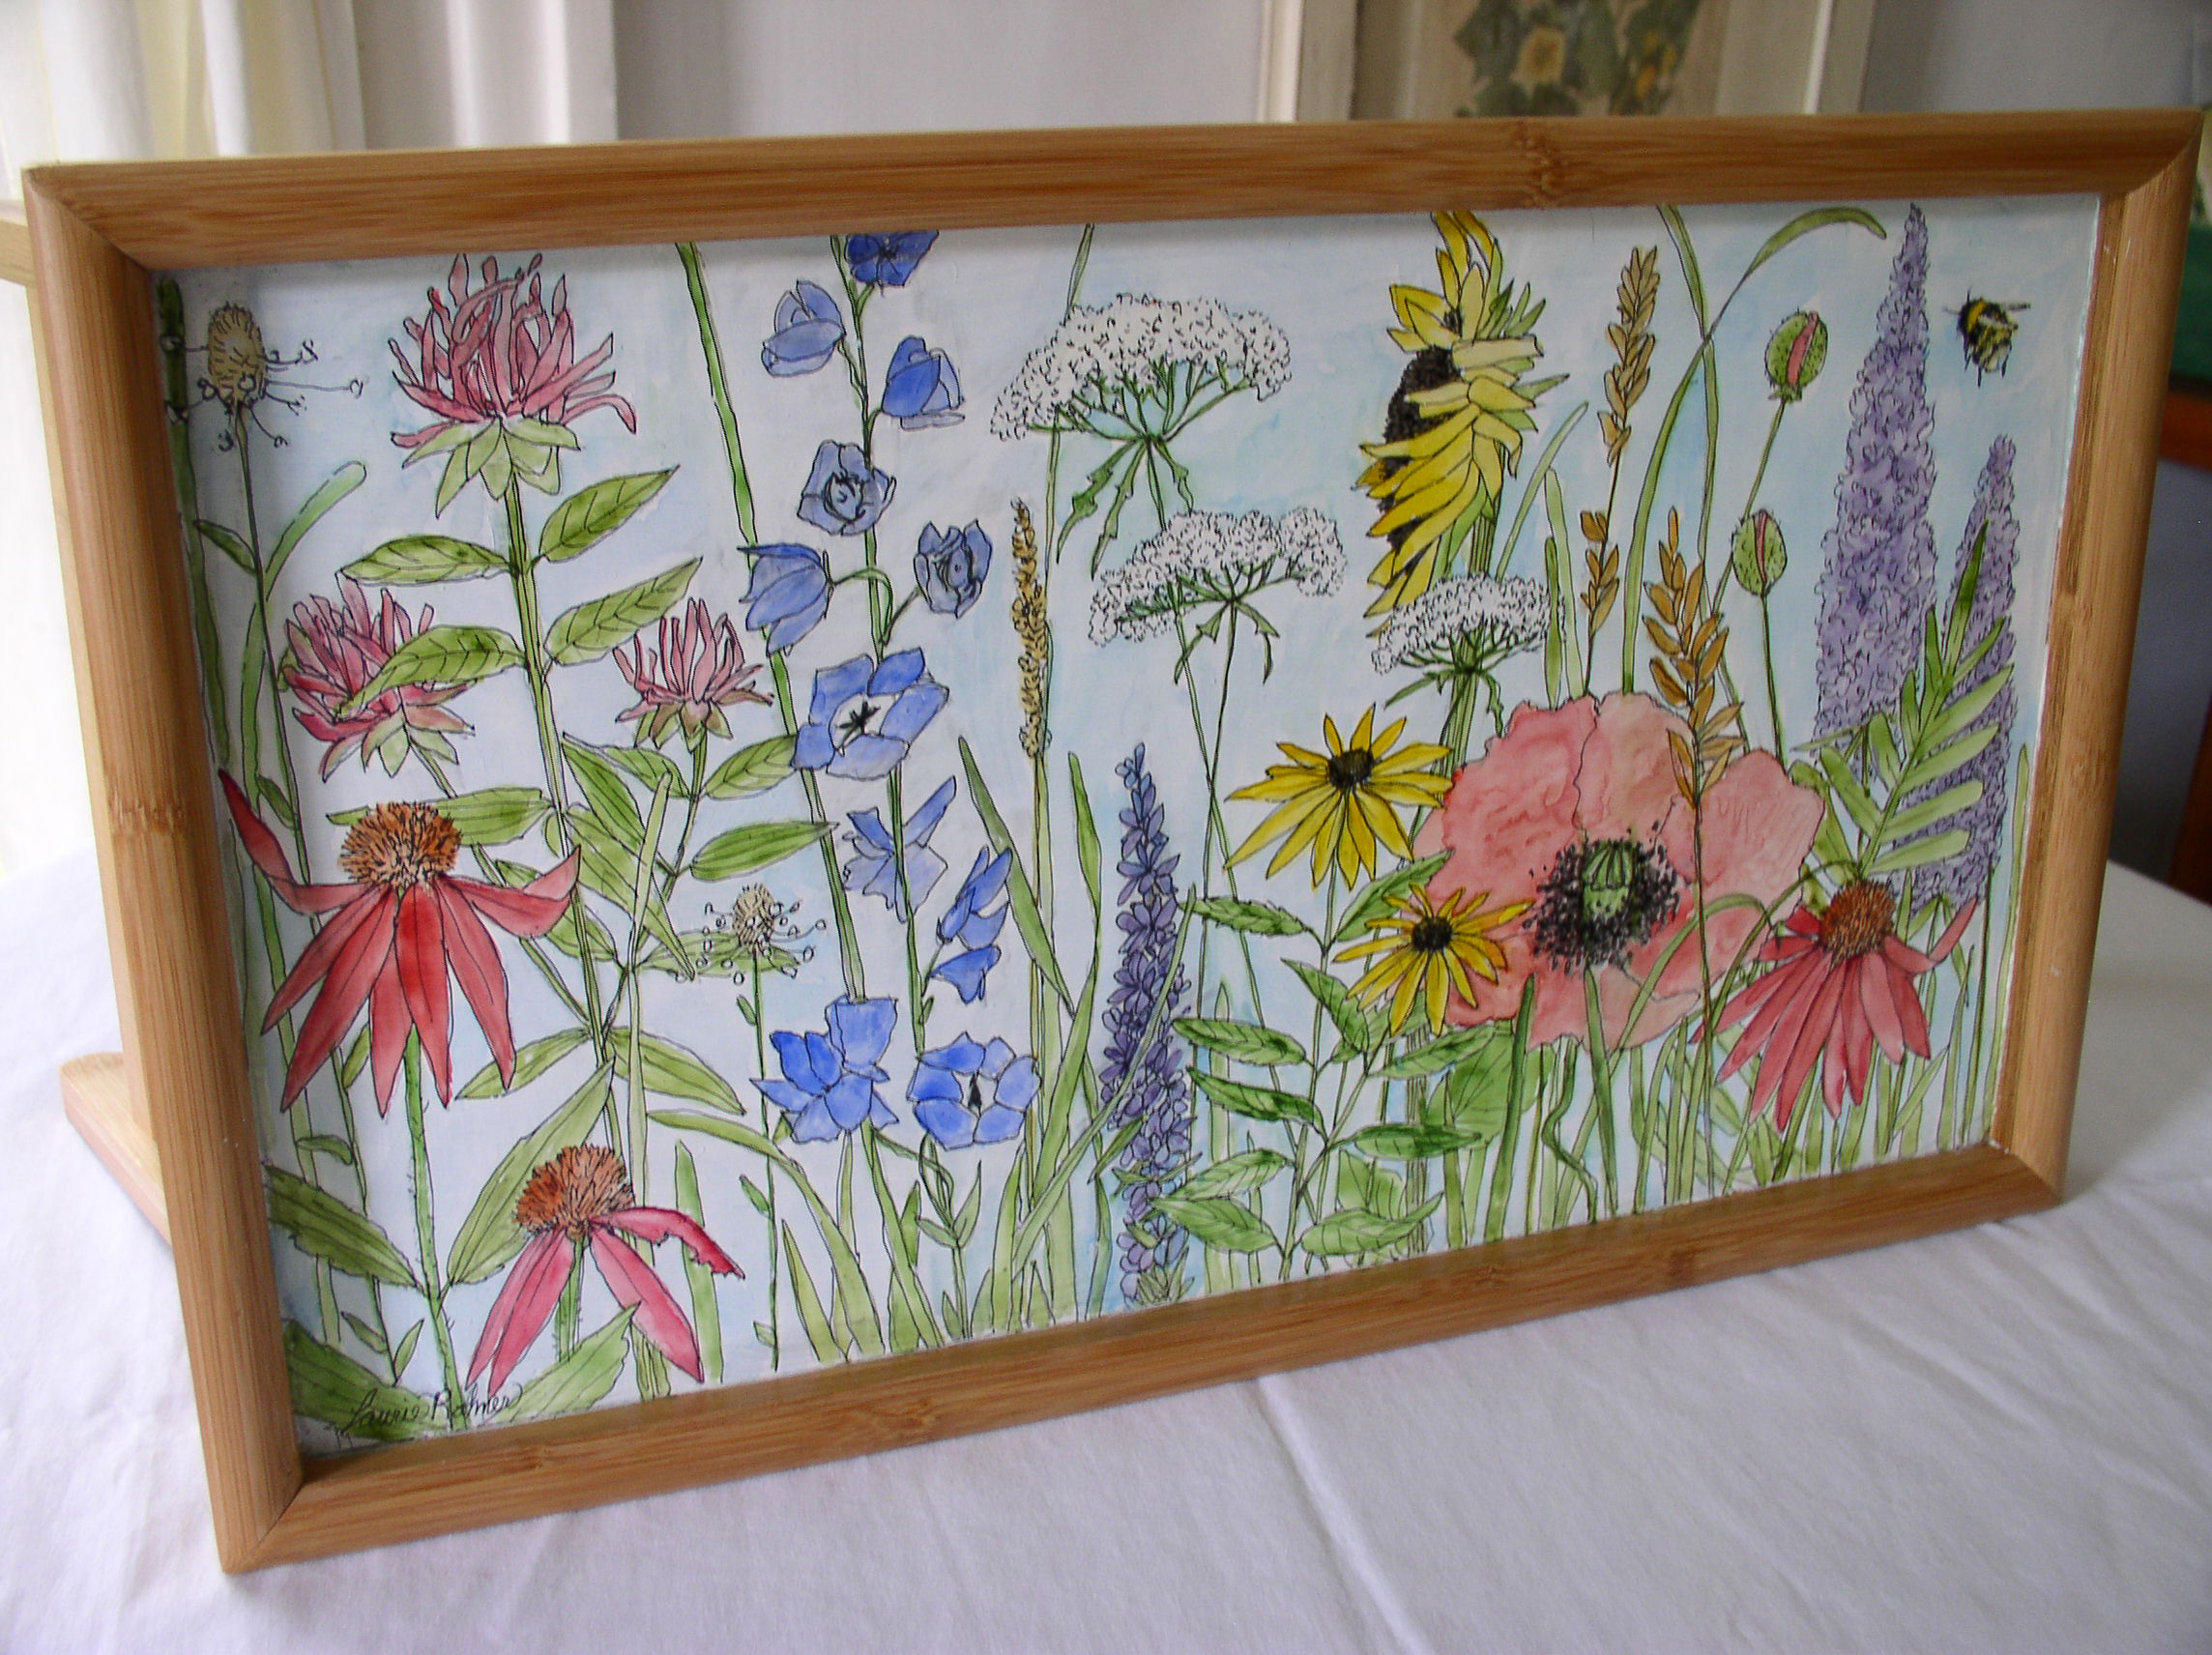 Farmhouse Watercolor Painted Wood Tray with Botanical Garden Flowers